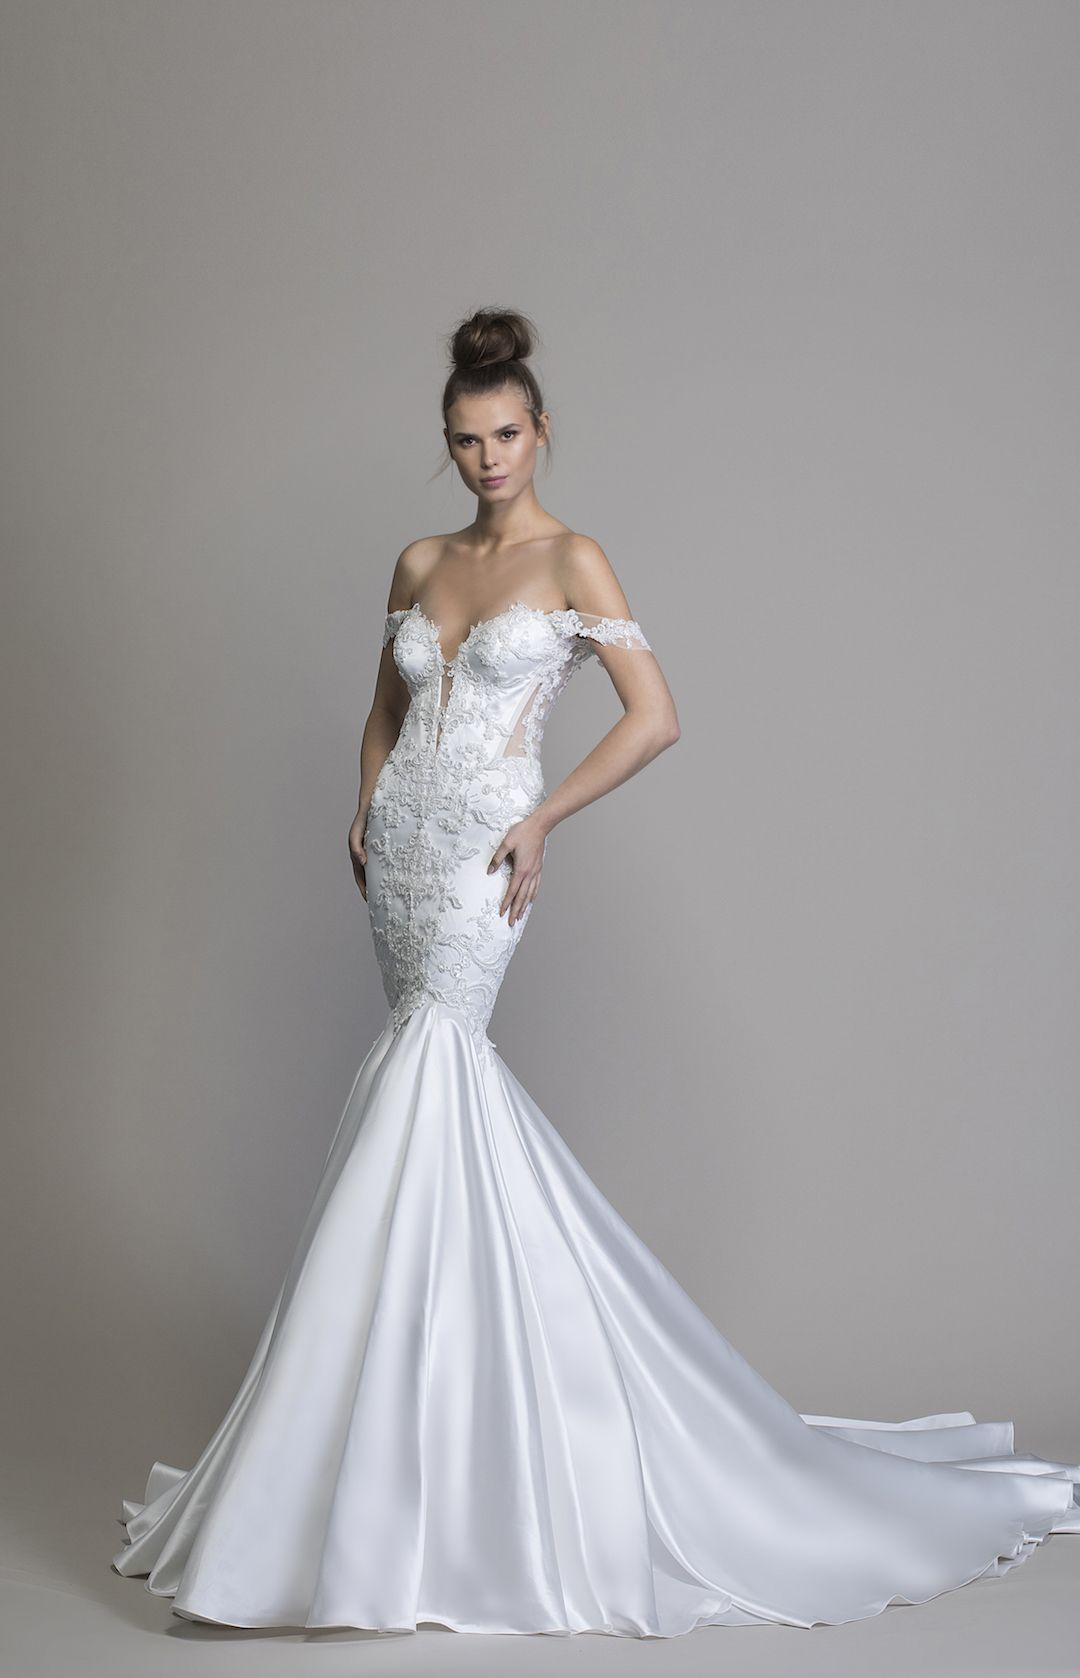 Style 8933 Satin Mermaid Wedding Dress Accented With Apron Tulle And Organza Skirt Justin Alexander Satin Mermaid Wedding Dress Dream Wedding Dresses Mermaid Wedding Dress [ 1200 x 800 Pixel ]